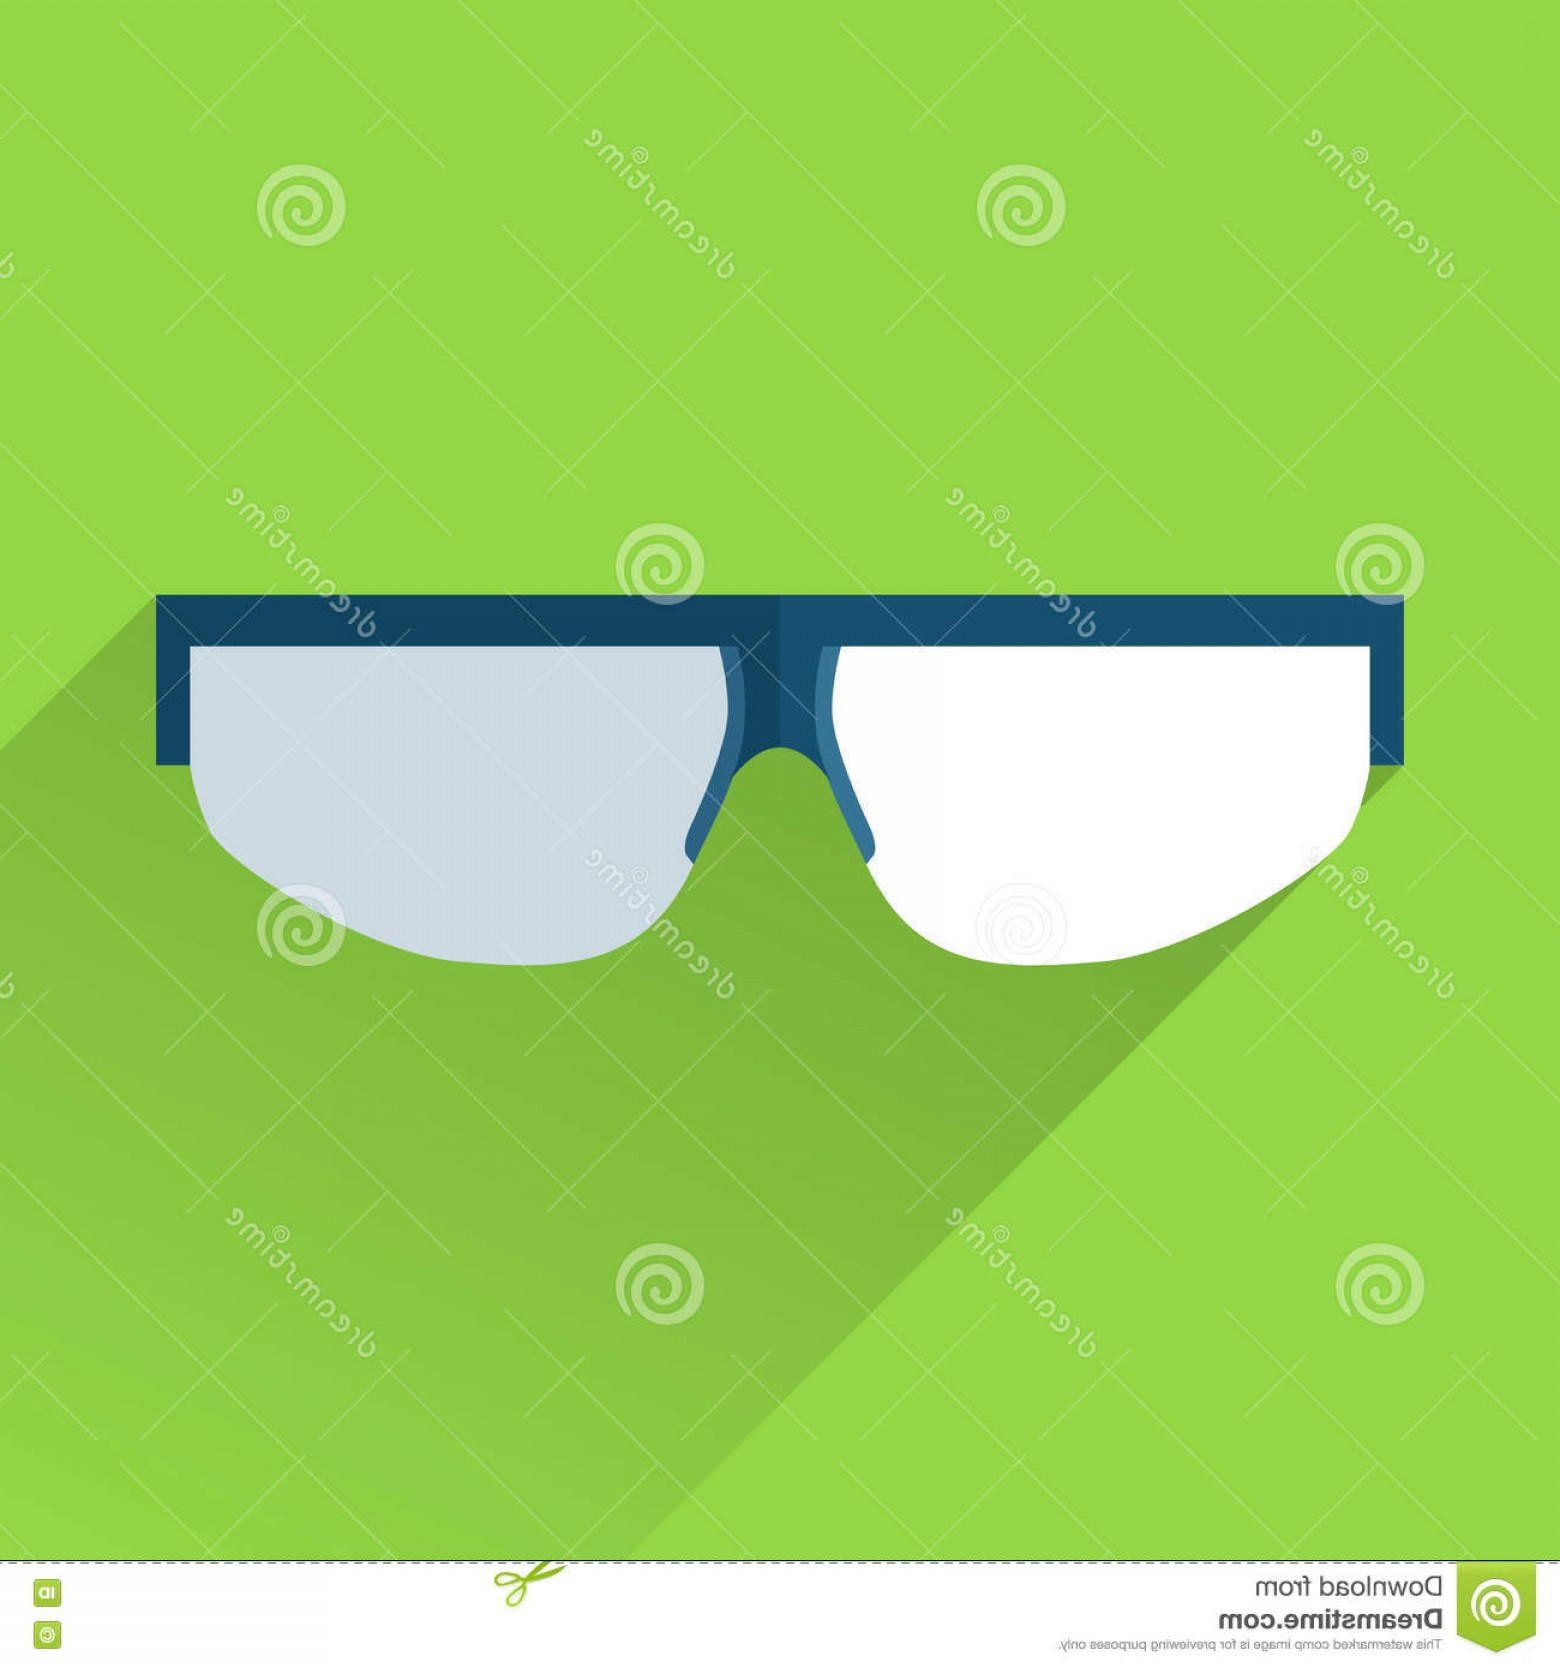 Construction Safety Goggles Vector: Stock Illustration Safety Goggles Flat Color Icon Isolated Green Image